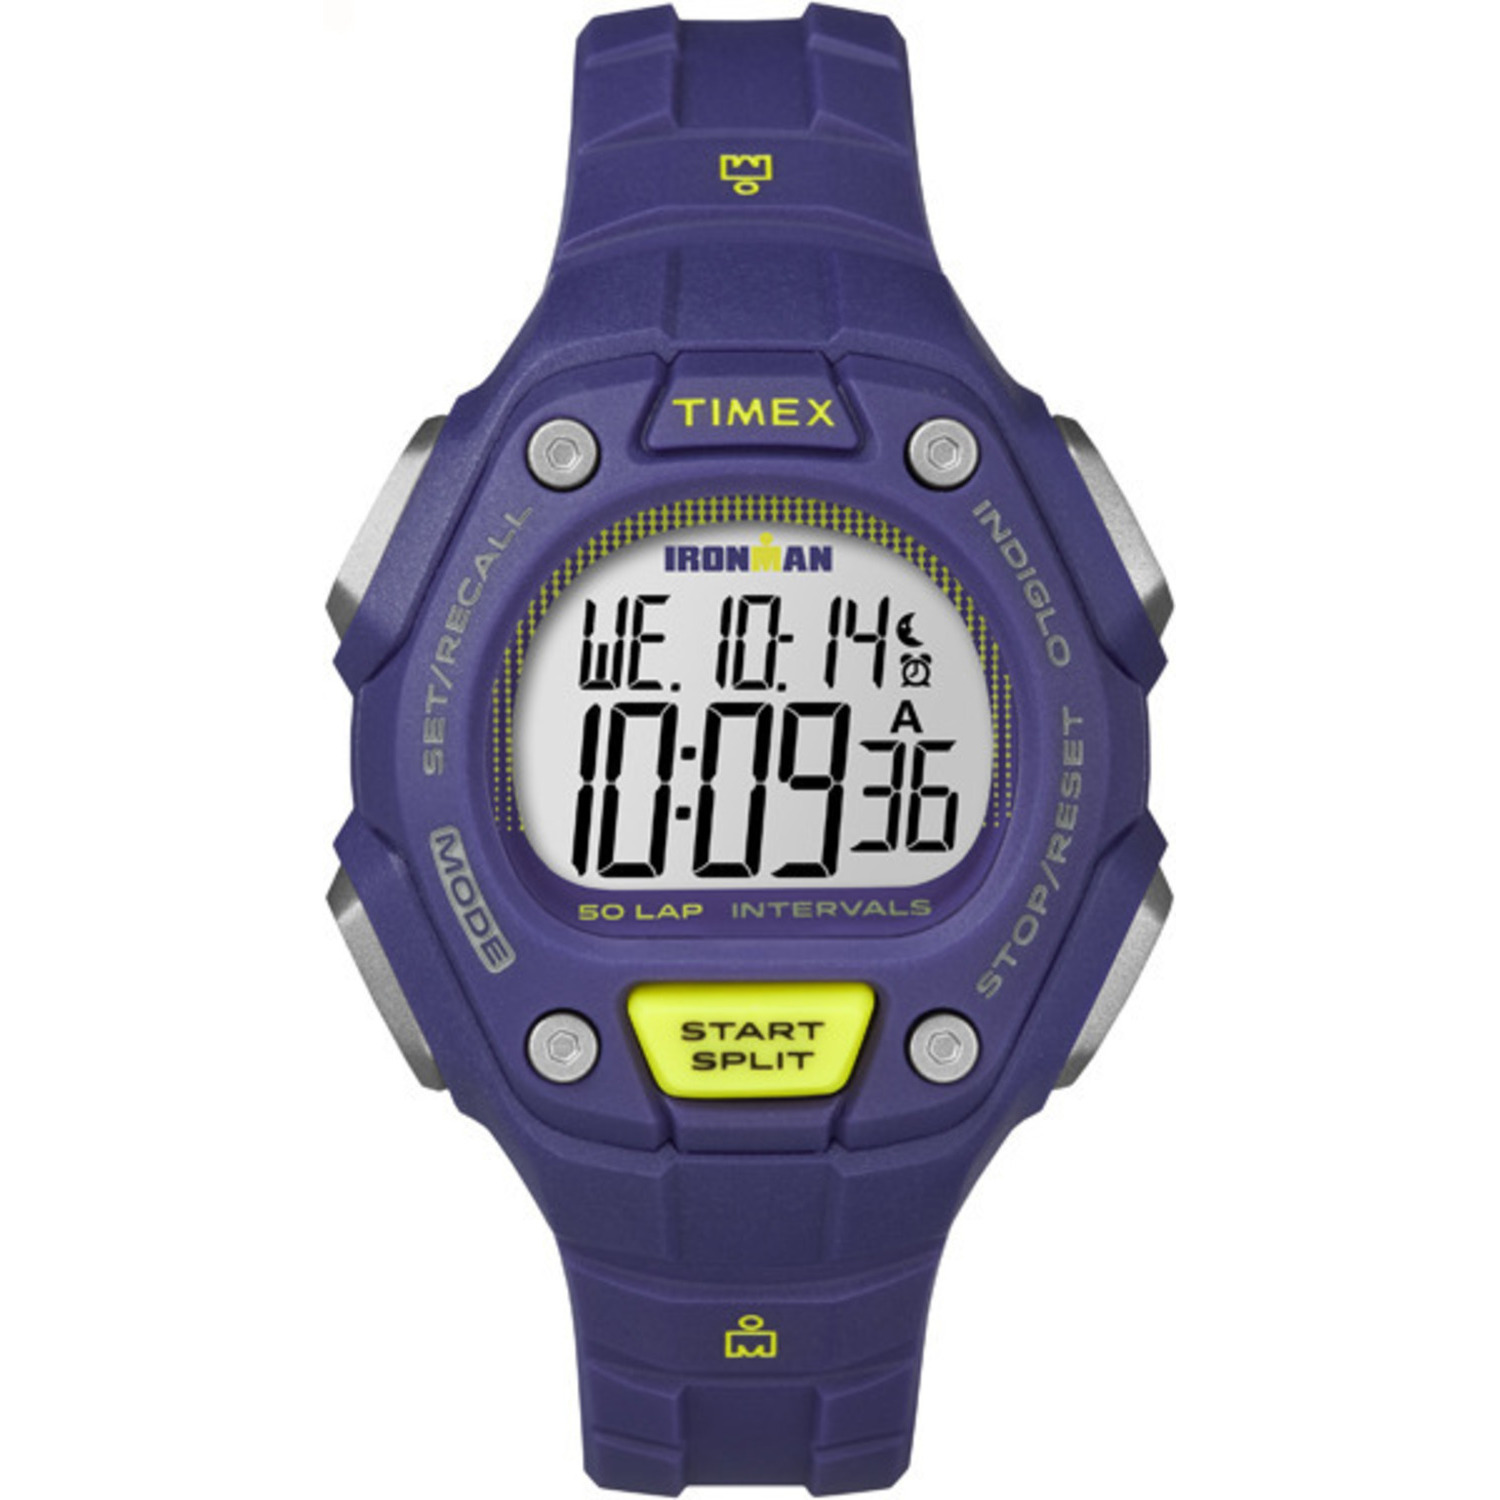 Timex Women's Ironman Classic 30 Lap | Interval Timer Wor...